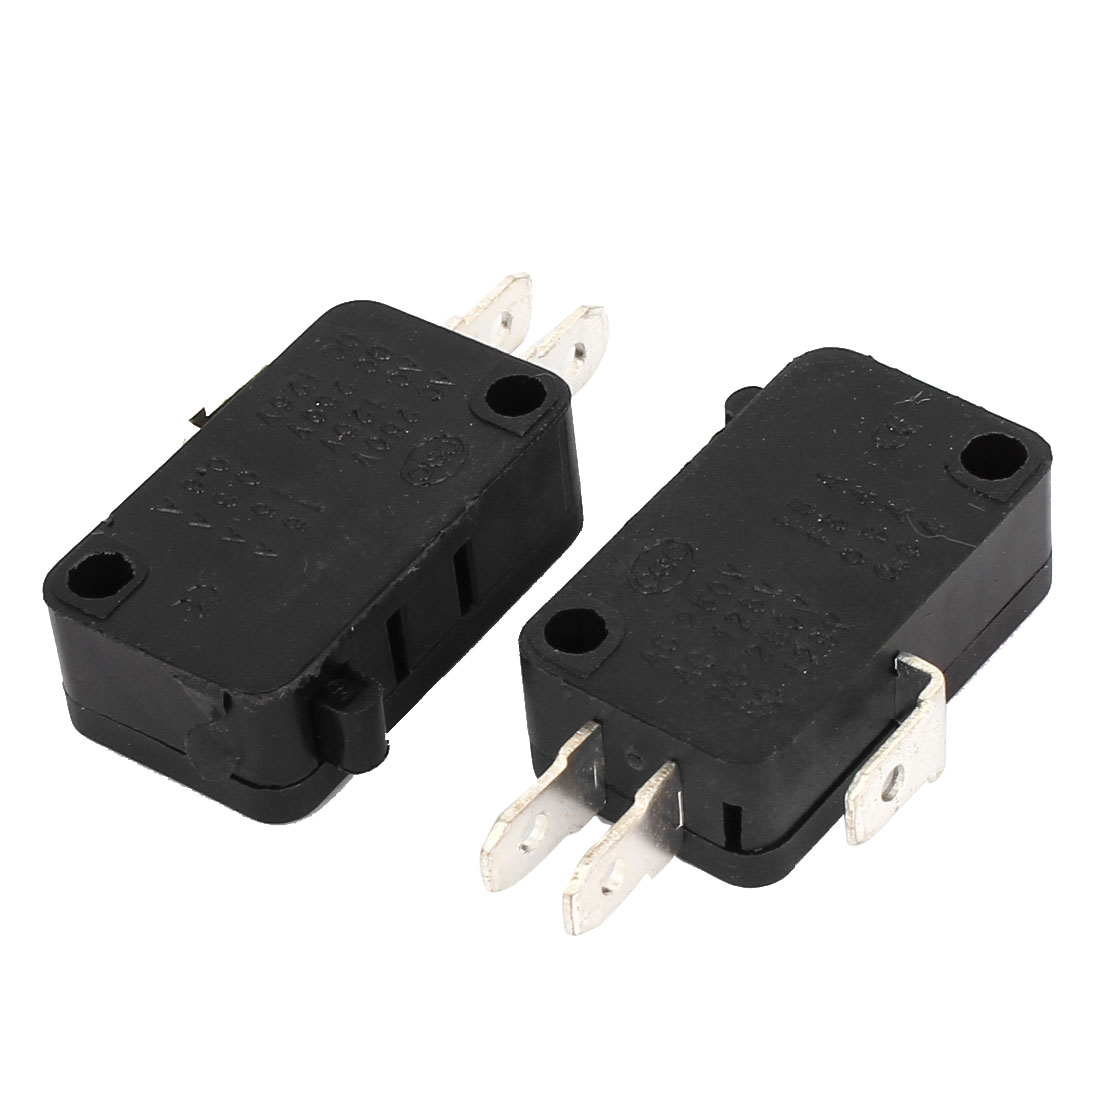 2Pcs SPDT 3-Pin 1NO+1NC Memontary Push Button Actuator Rectangle Black Micro Limit Switch AC 250V 15A